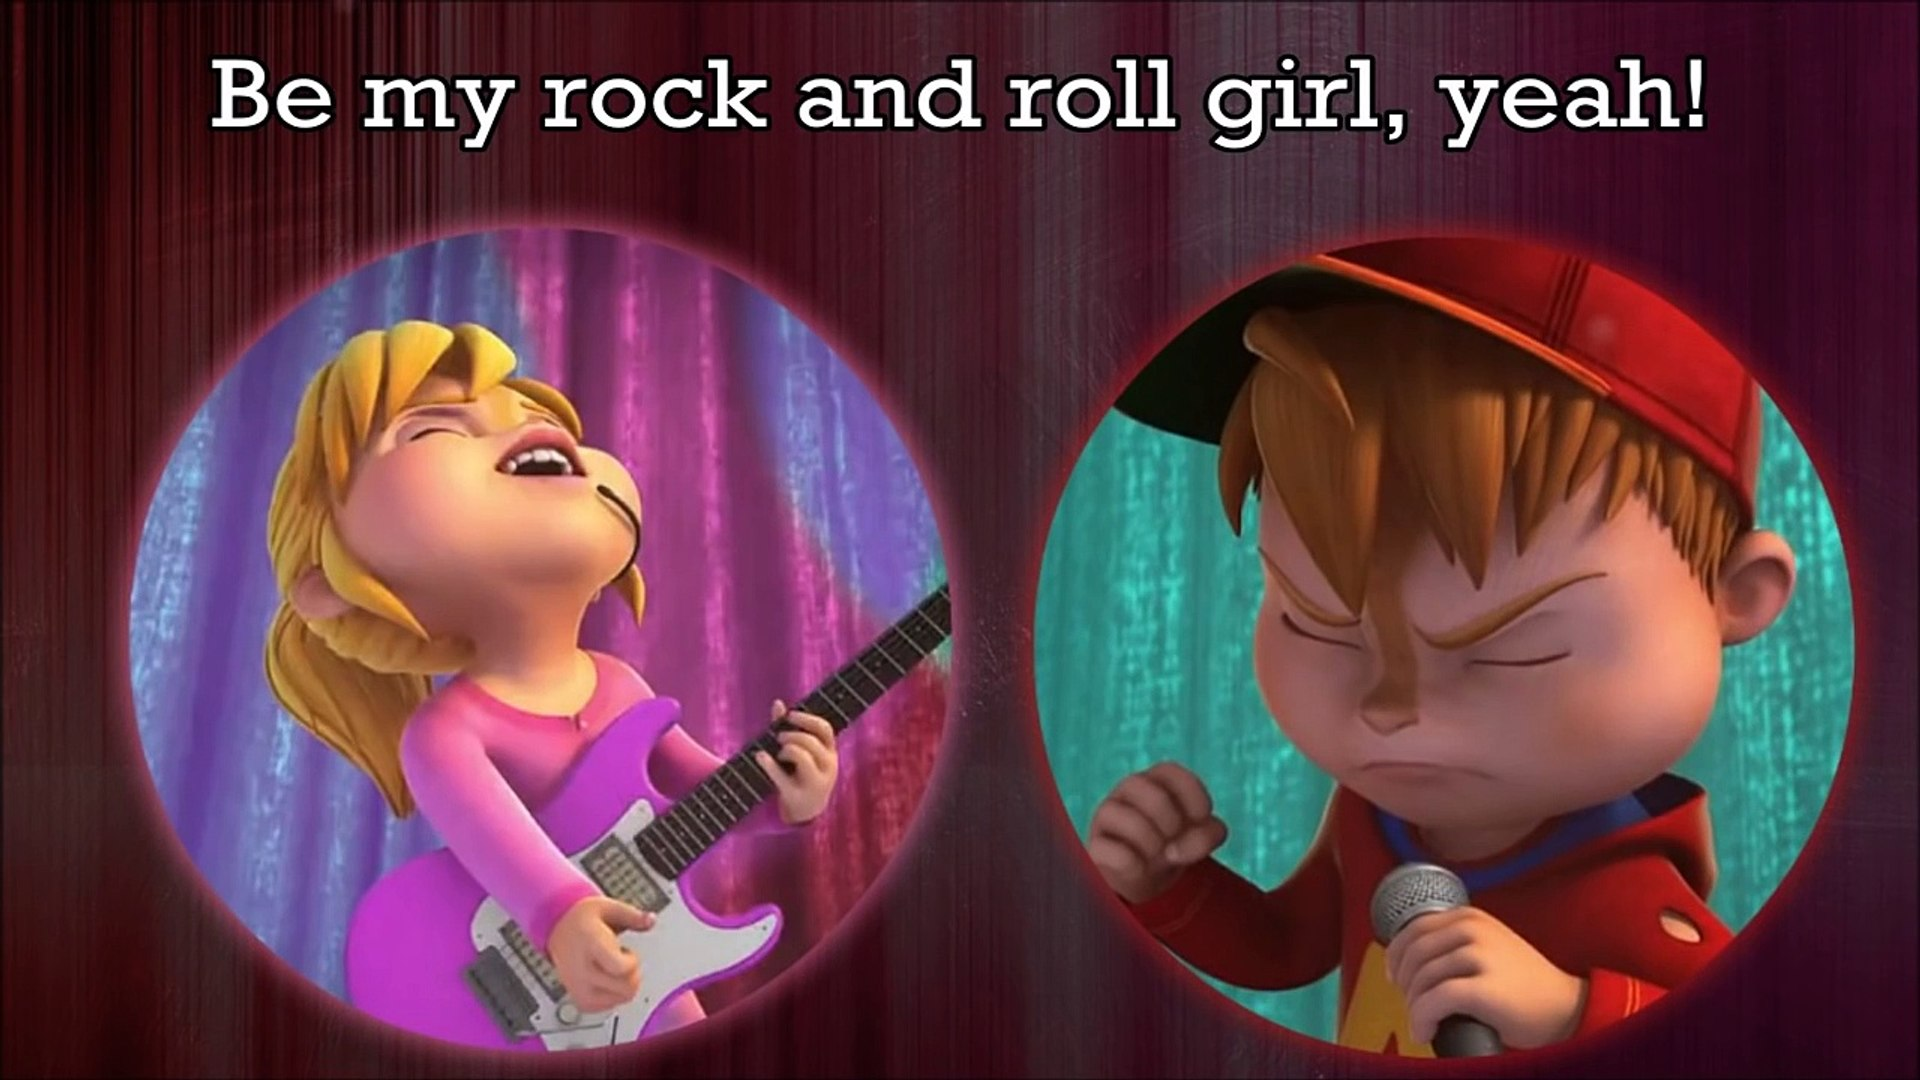 Alvin And The Chipmunks Alvin And Brittany rock n roll lover alvin seville and brittany miller lyrics